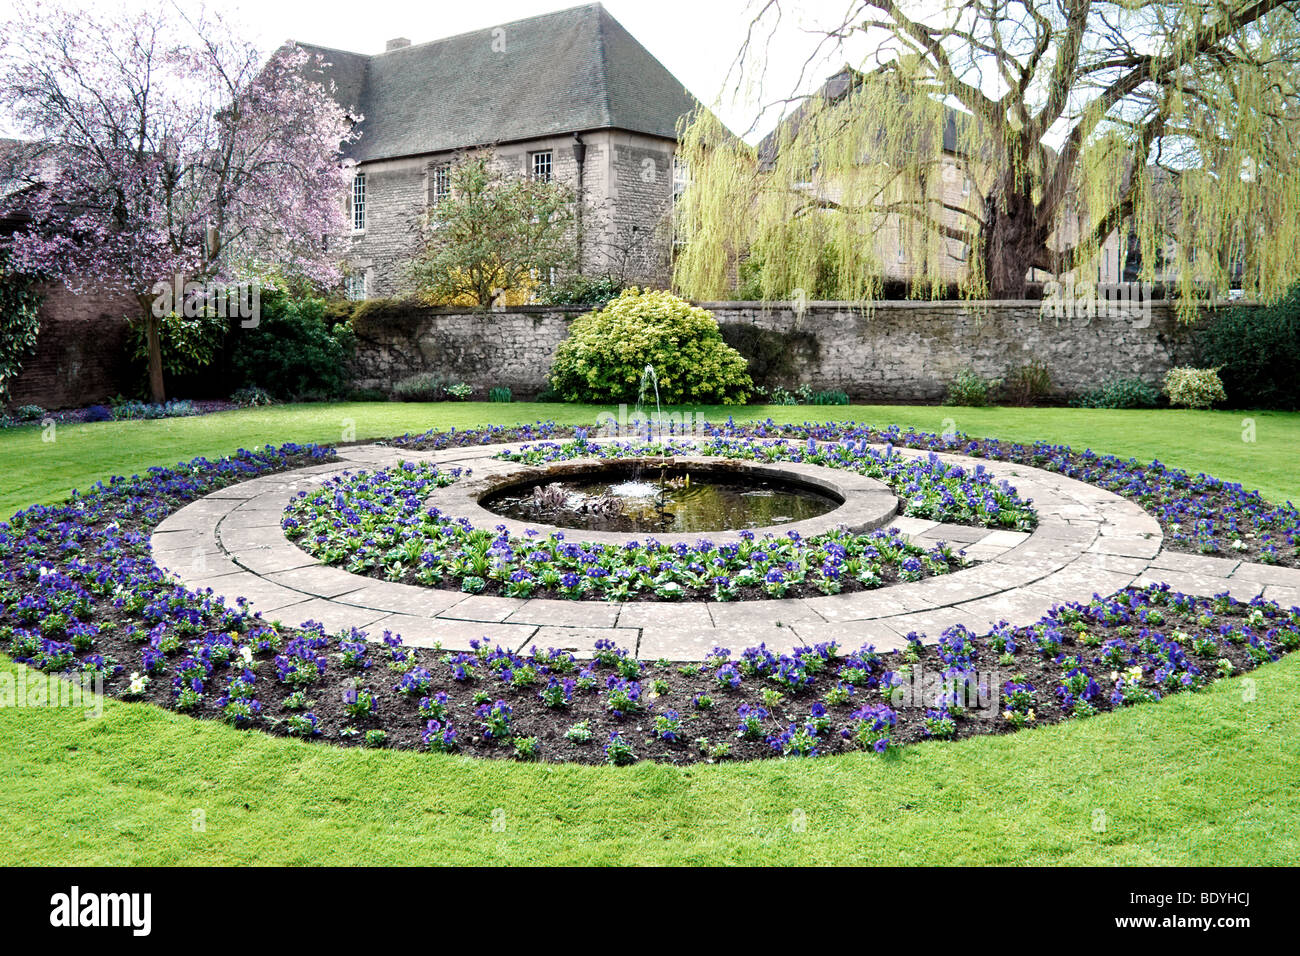 Circular Flower Bed And Fountain In Gardens At Oxford